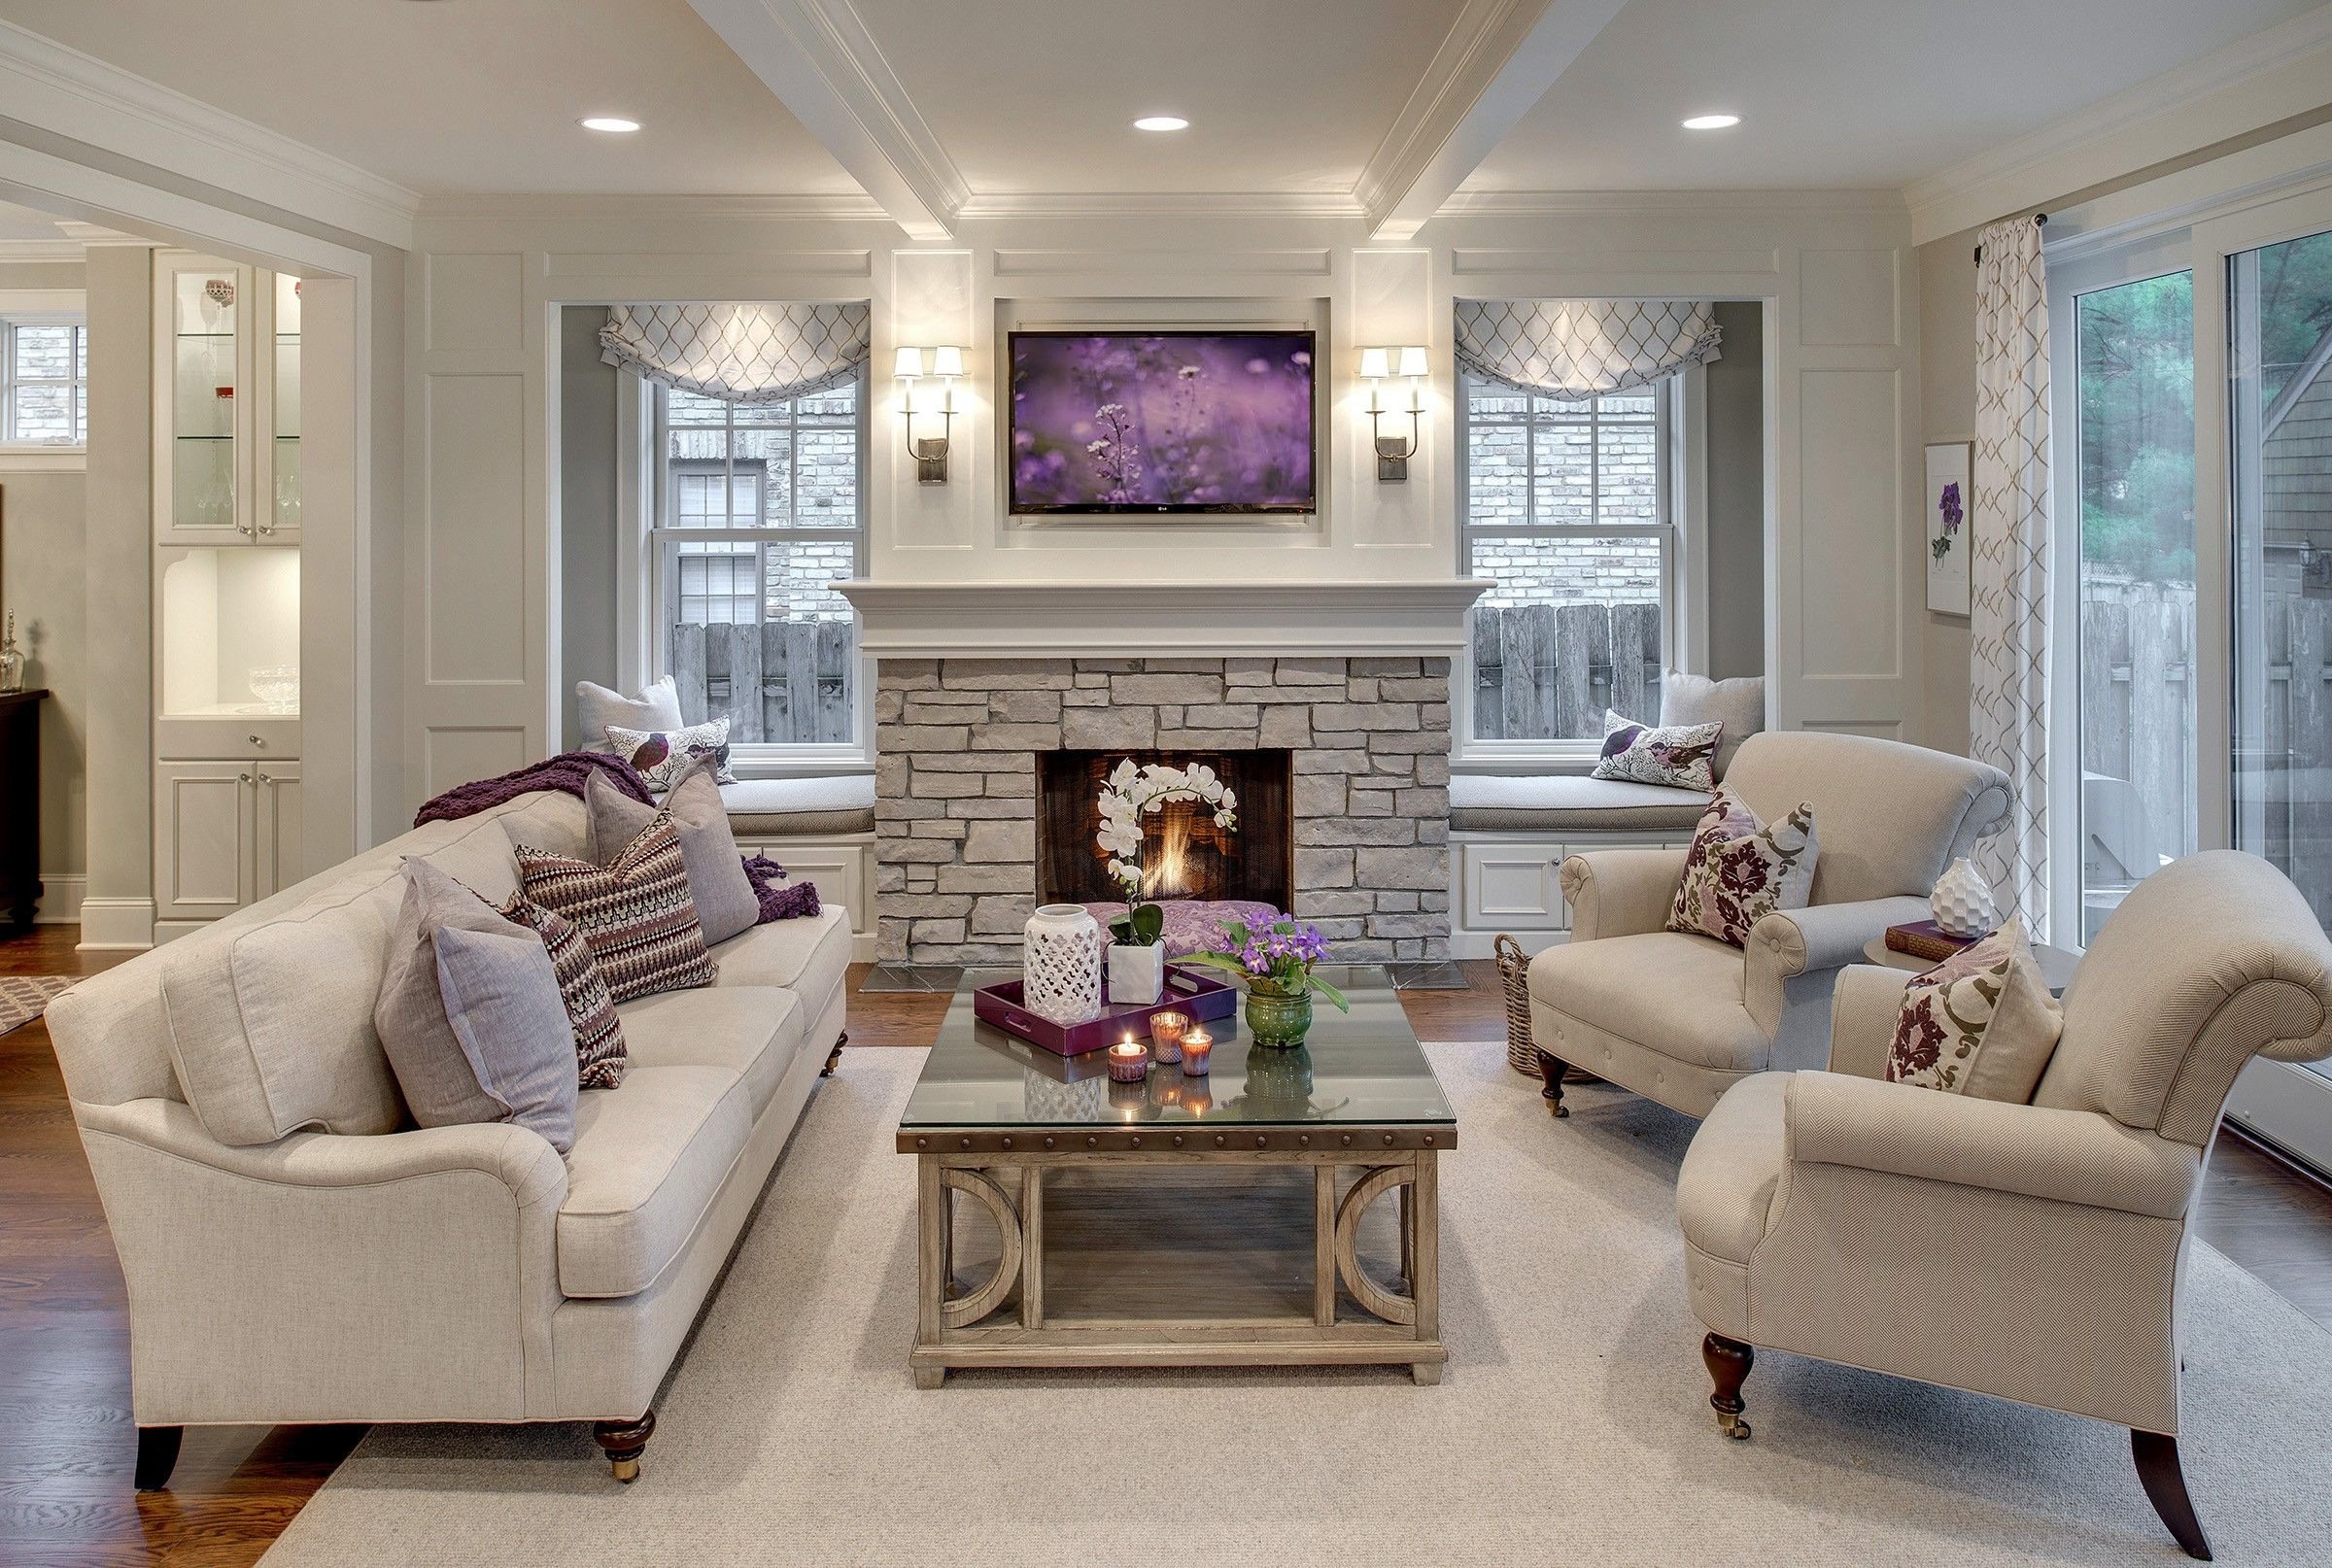 Traditional Living Room Purple Accents Living Room Design Modern Farm House Living Room Purple Living Room